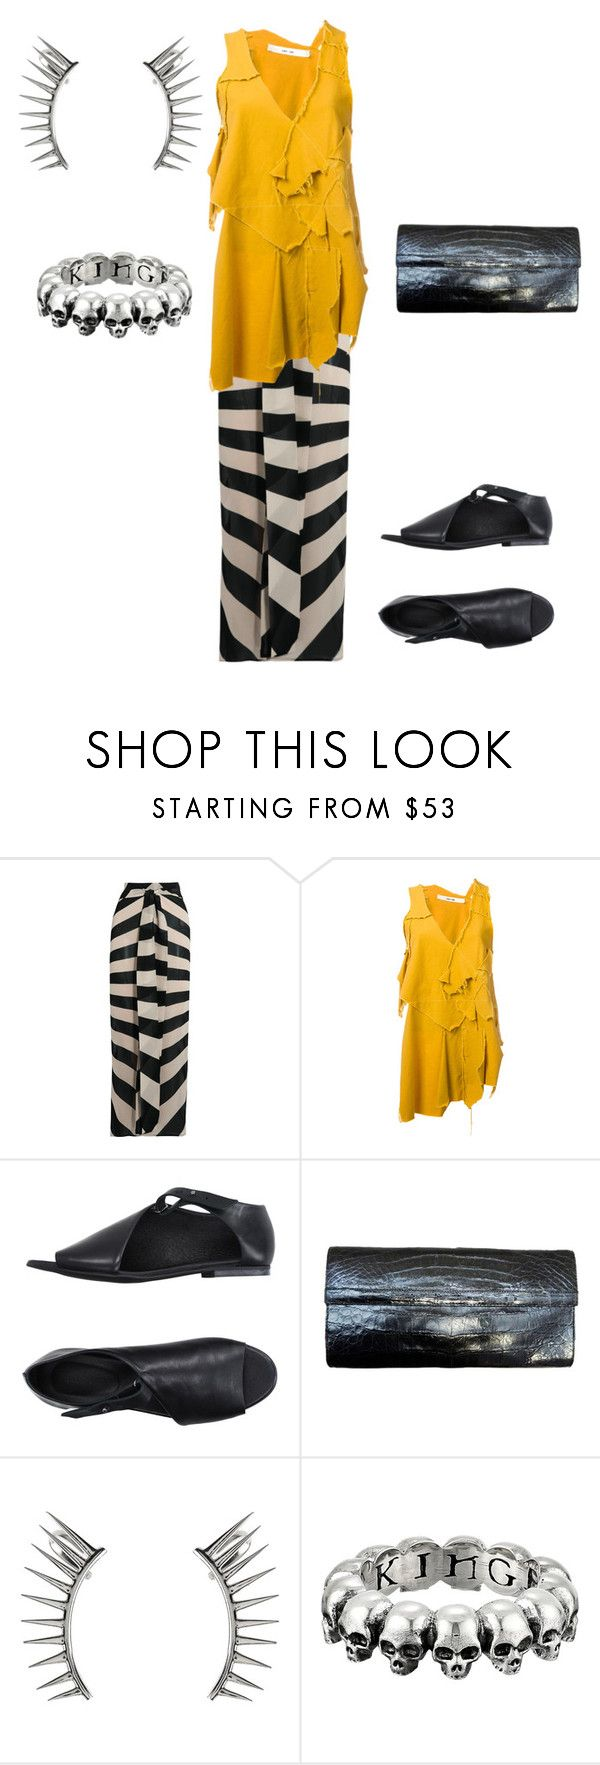 """Untitled #517"" by jessica-uyvette-thompson ❤ liked on Polyvore featuring Gareth Pugh, DAMIR DOMA, SILENT by Damir Doma, Nancy Gonzalez, Latelita and King Baby Studio"